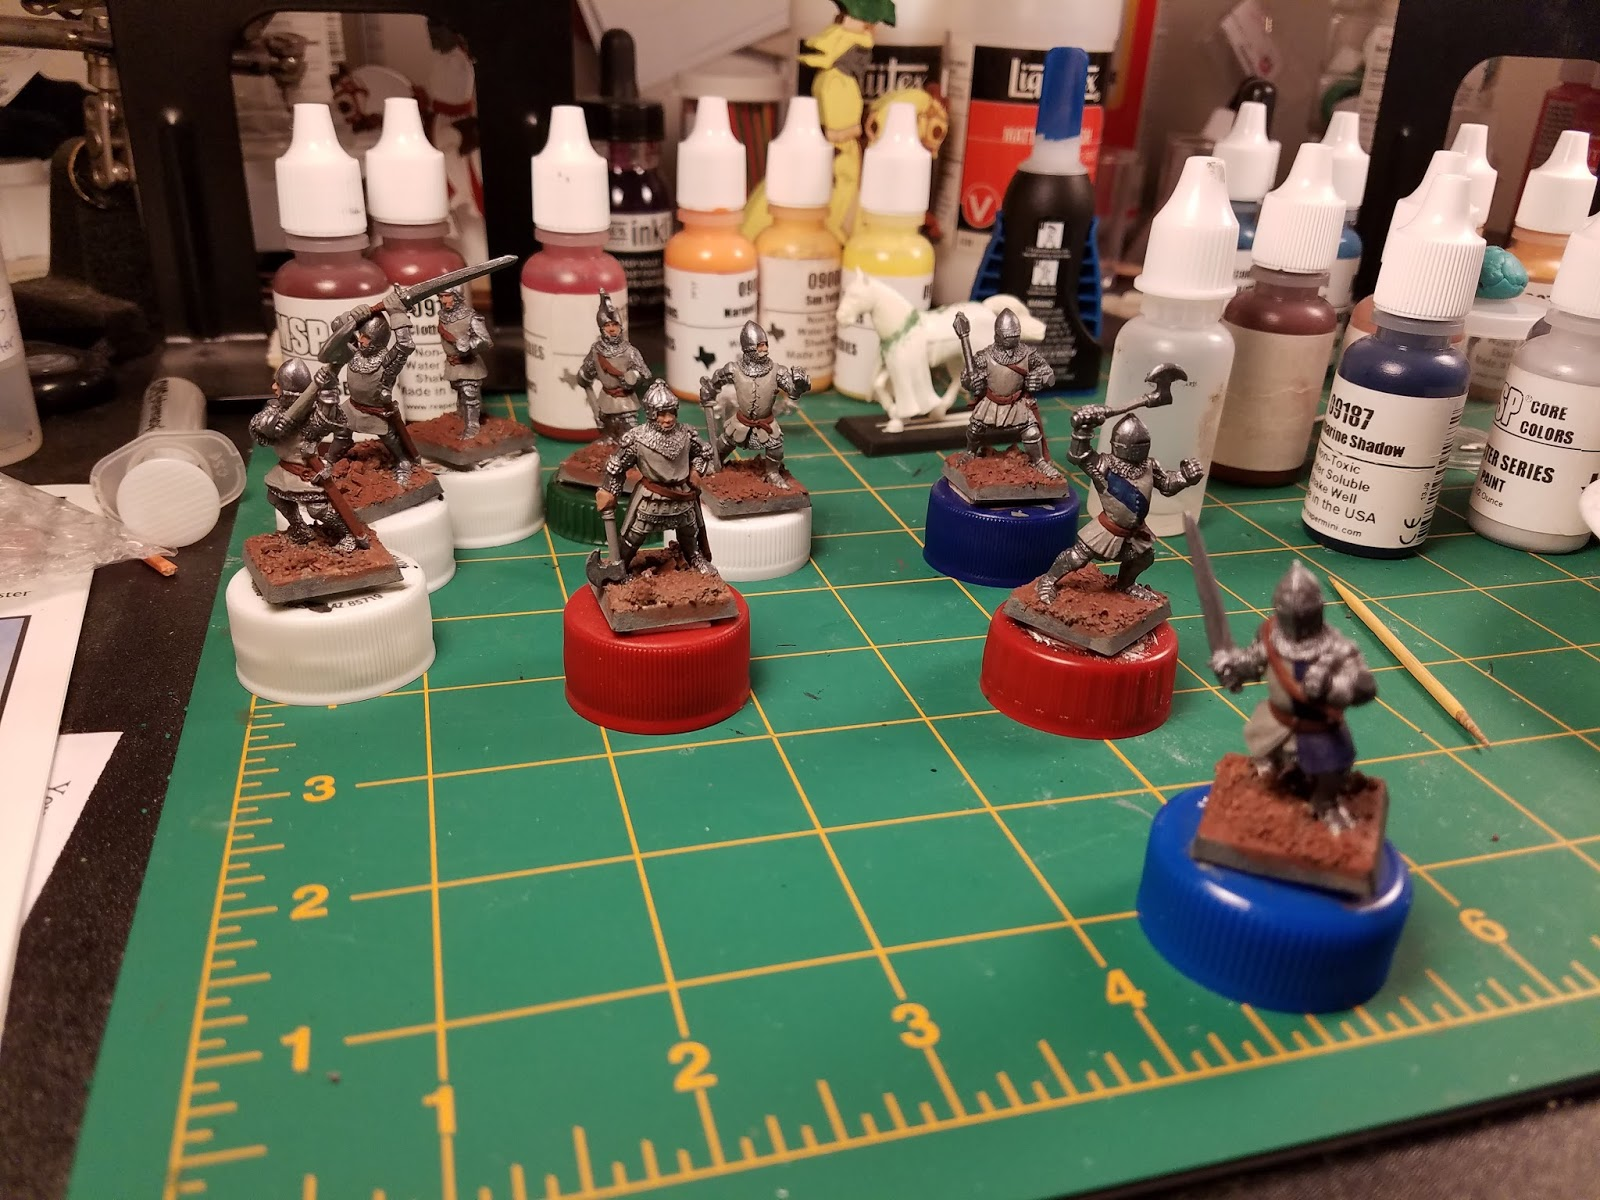 I Ve Decided On The Colors To Use For Knights M Going Combinations Of Blue Red Yellow And White These Guys As You Can See Started